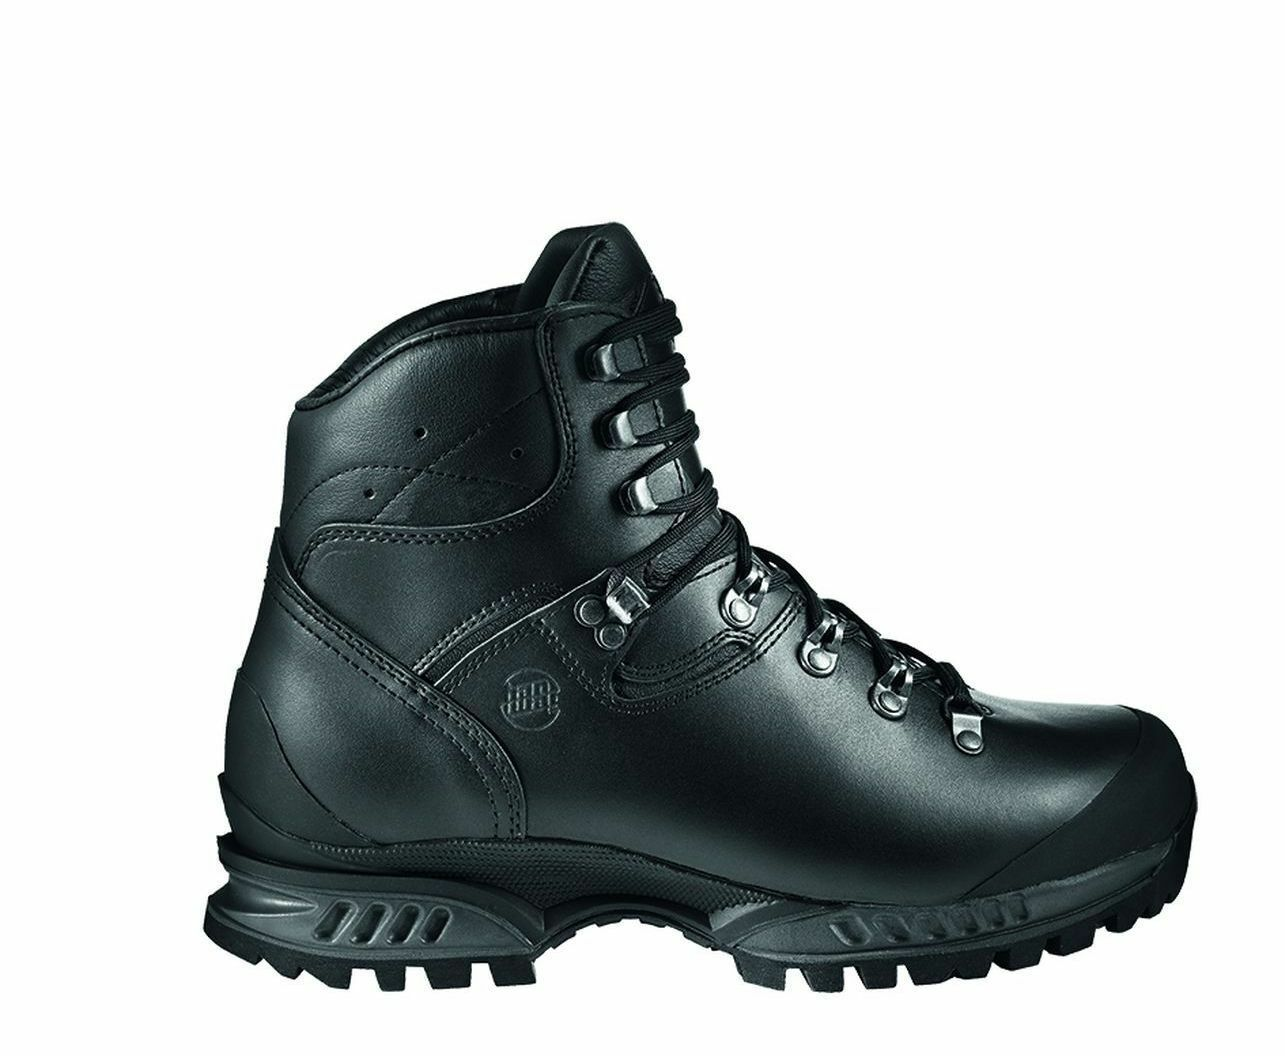 Hanwag Trekking shoes Tatra Wide Leather Size 8,5 - 42,5